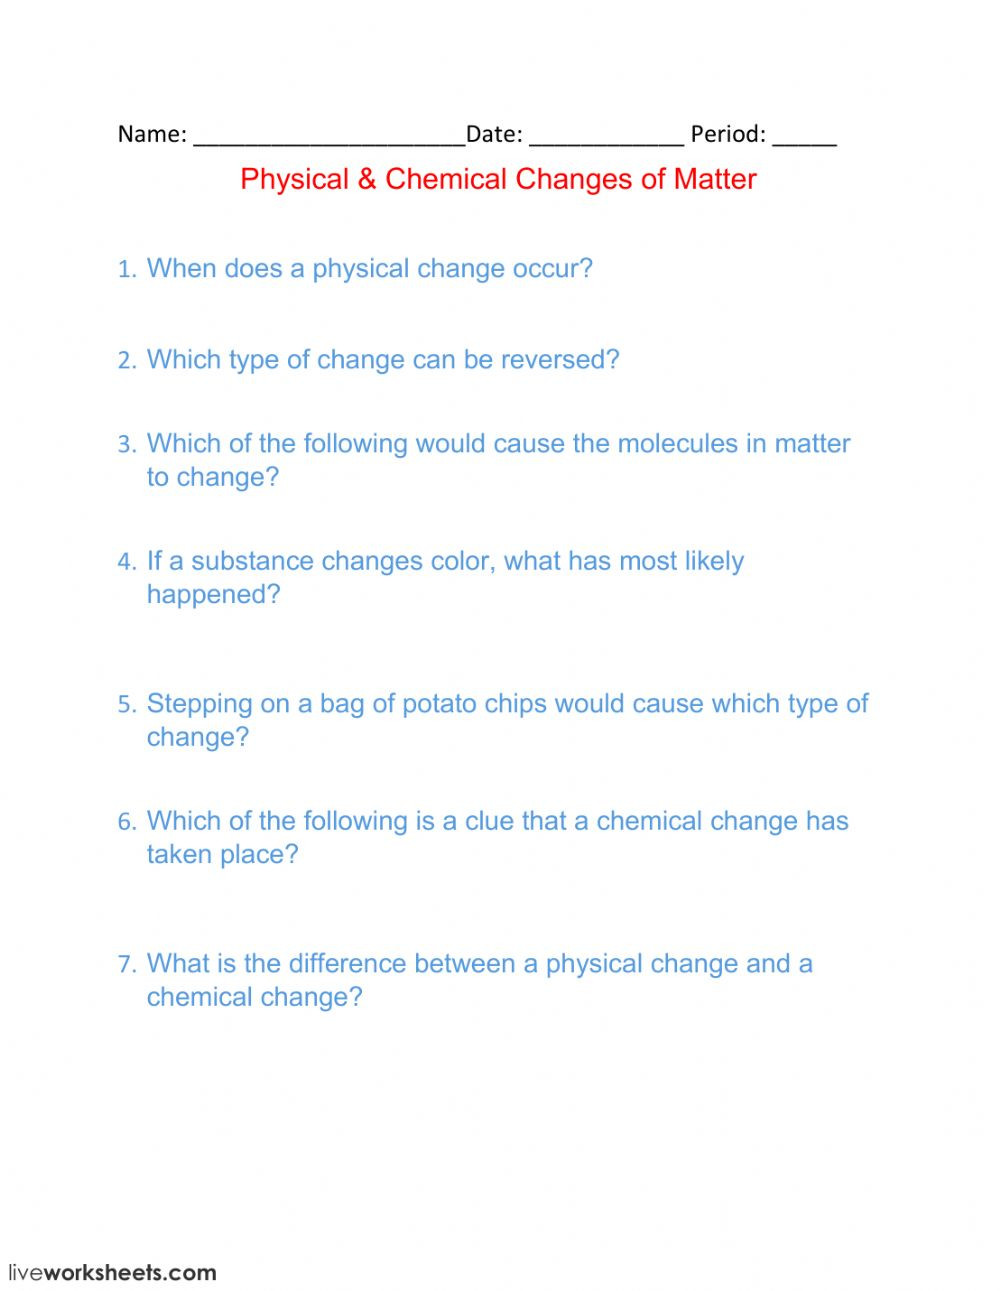 Chemical and Physical Changes Worksheet Physical Chemical Changes Of Matter Interactive Worksheet